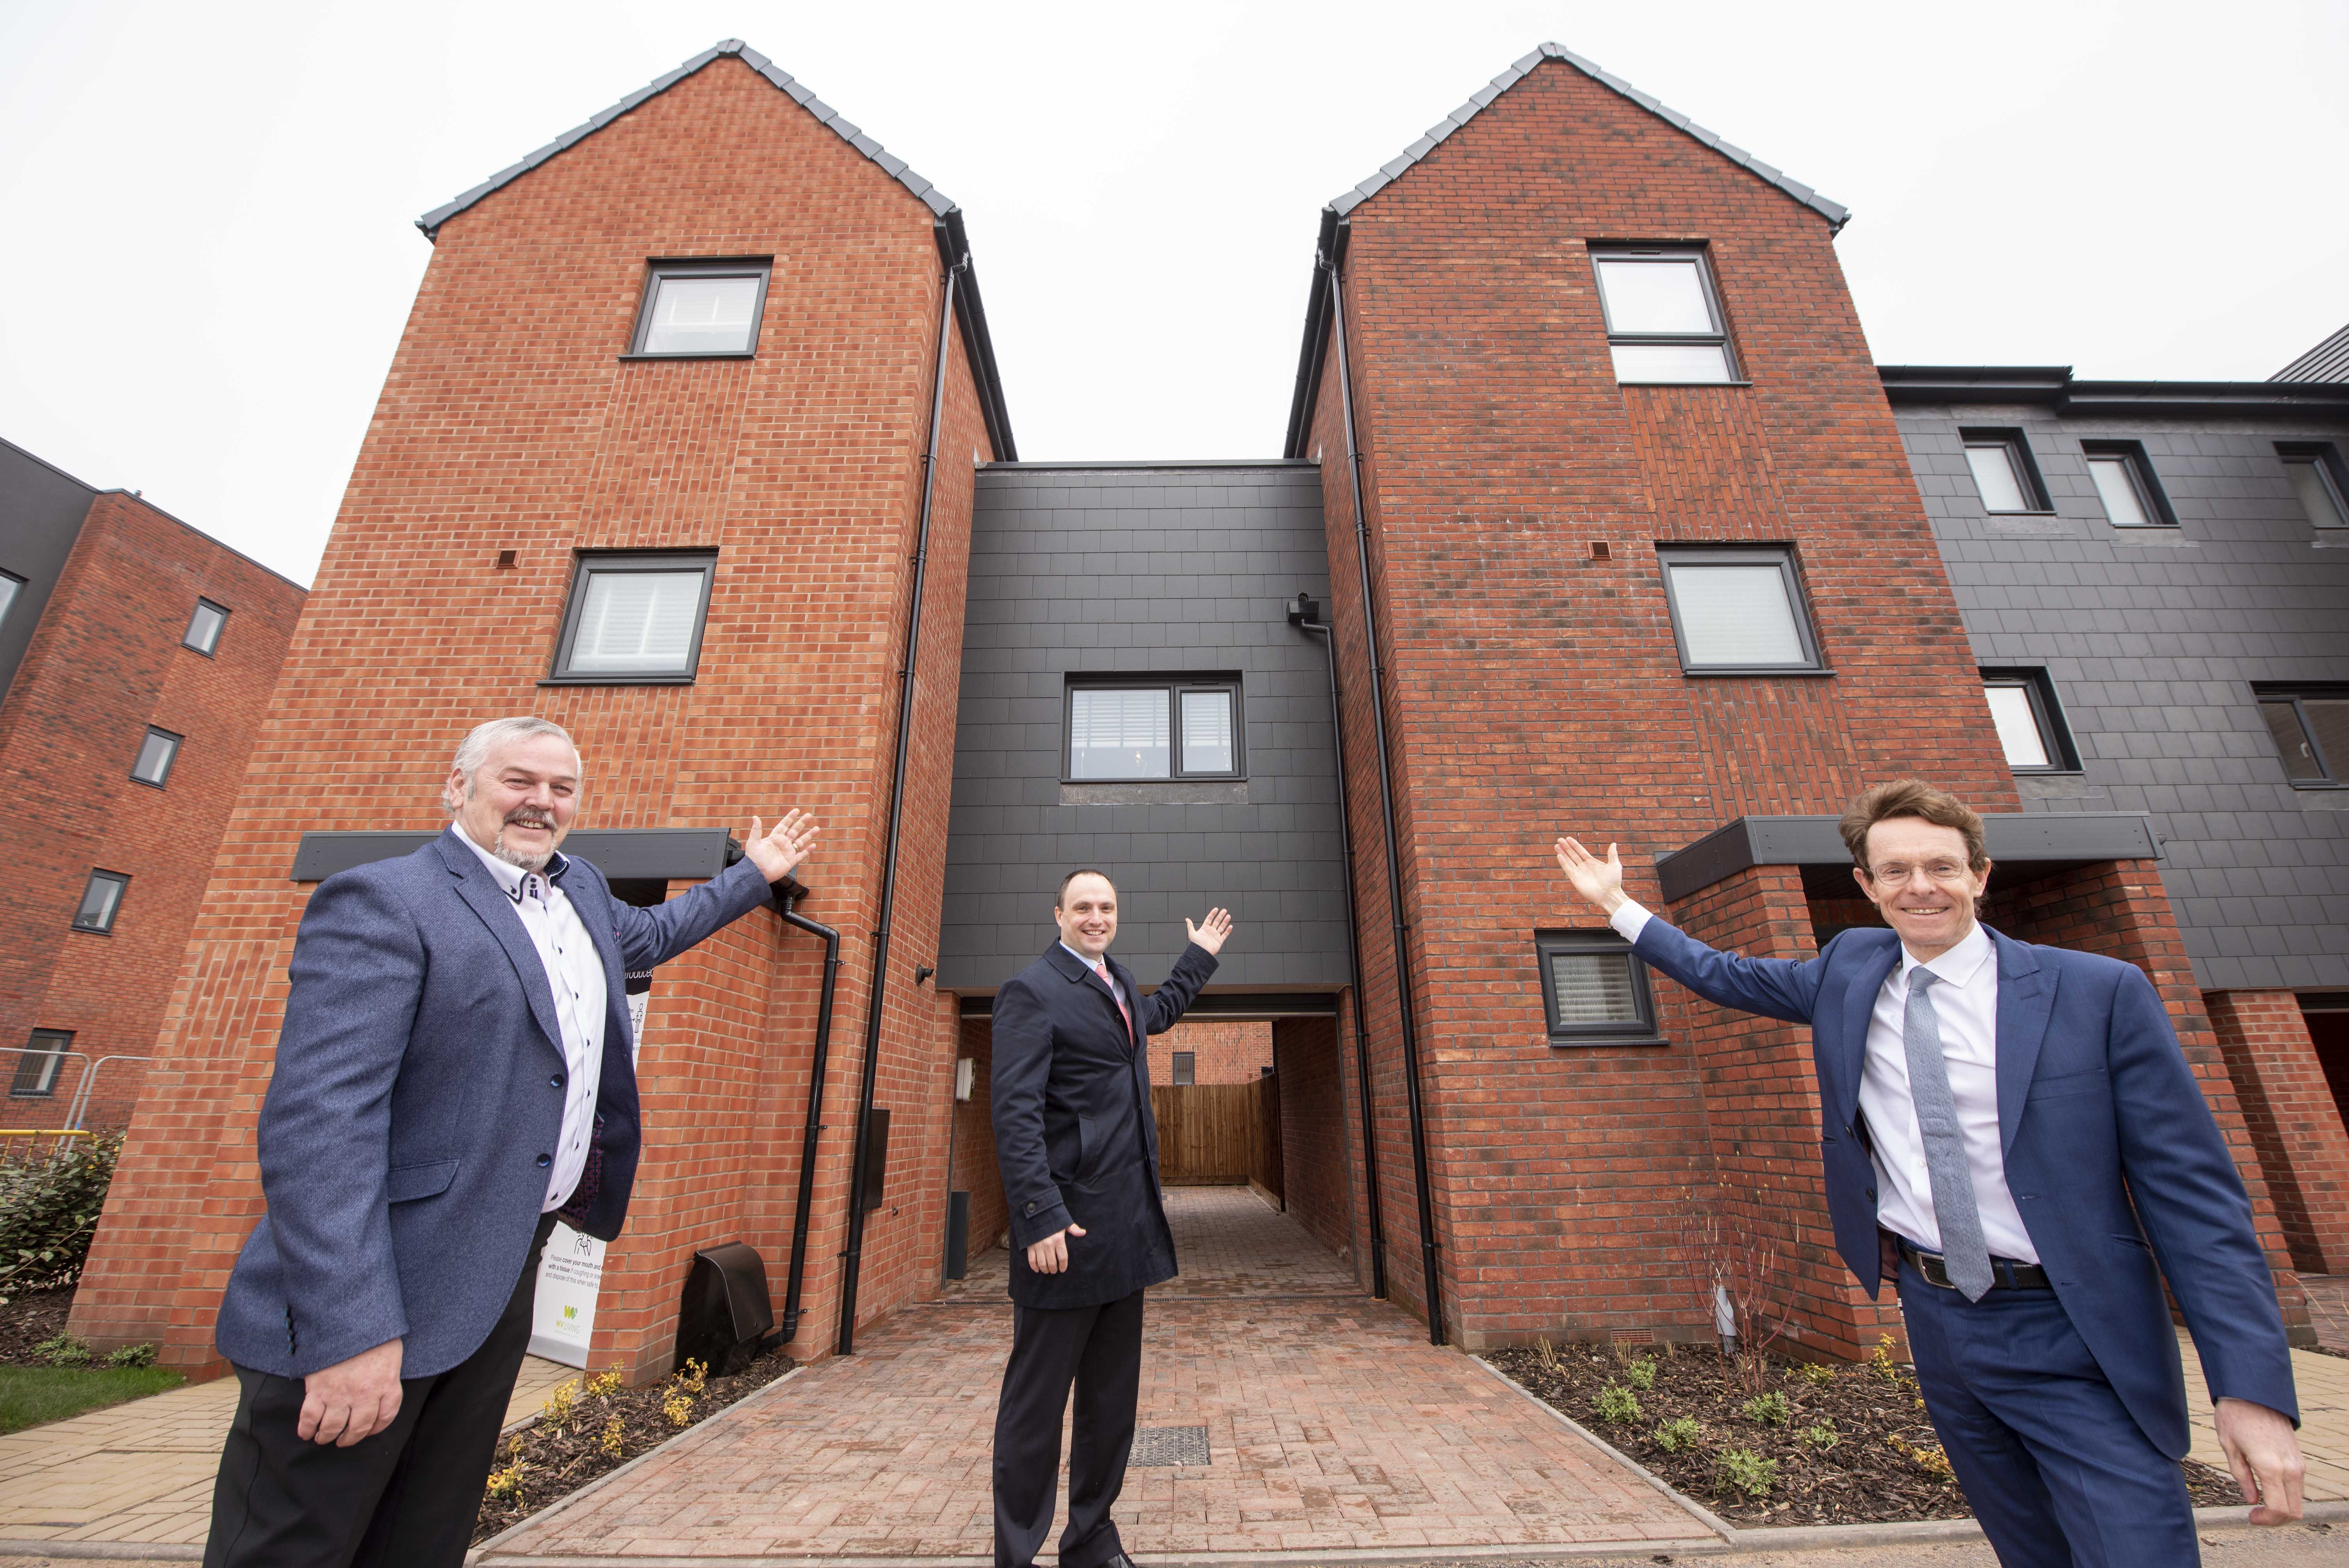 West Midlands leads the way with pioneering home ownership scheme